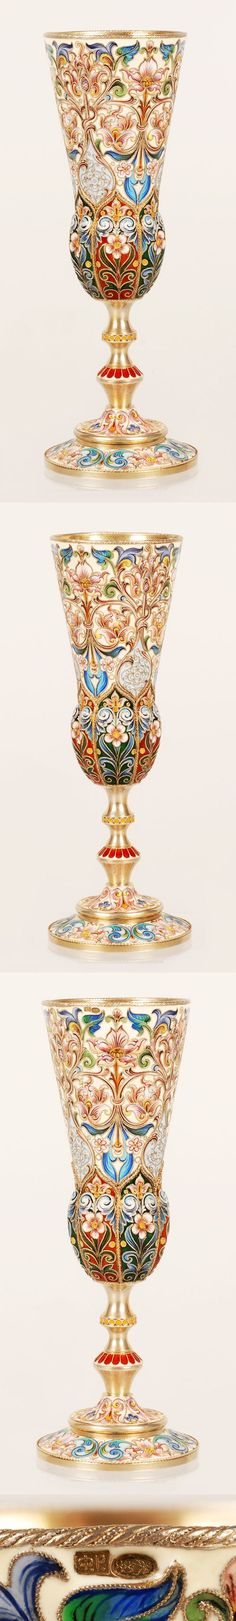 Faberge gilded silver and shaded cloisonne enamel champagne flute, Feodor Ruckert, Moscow, circa 1900.